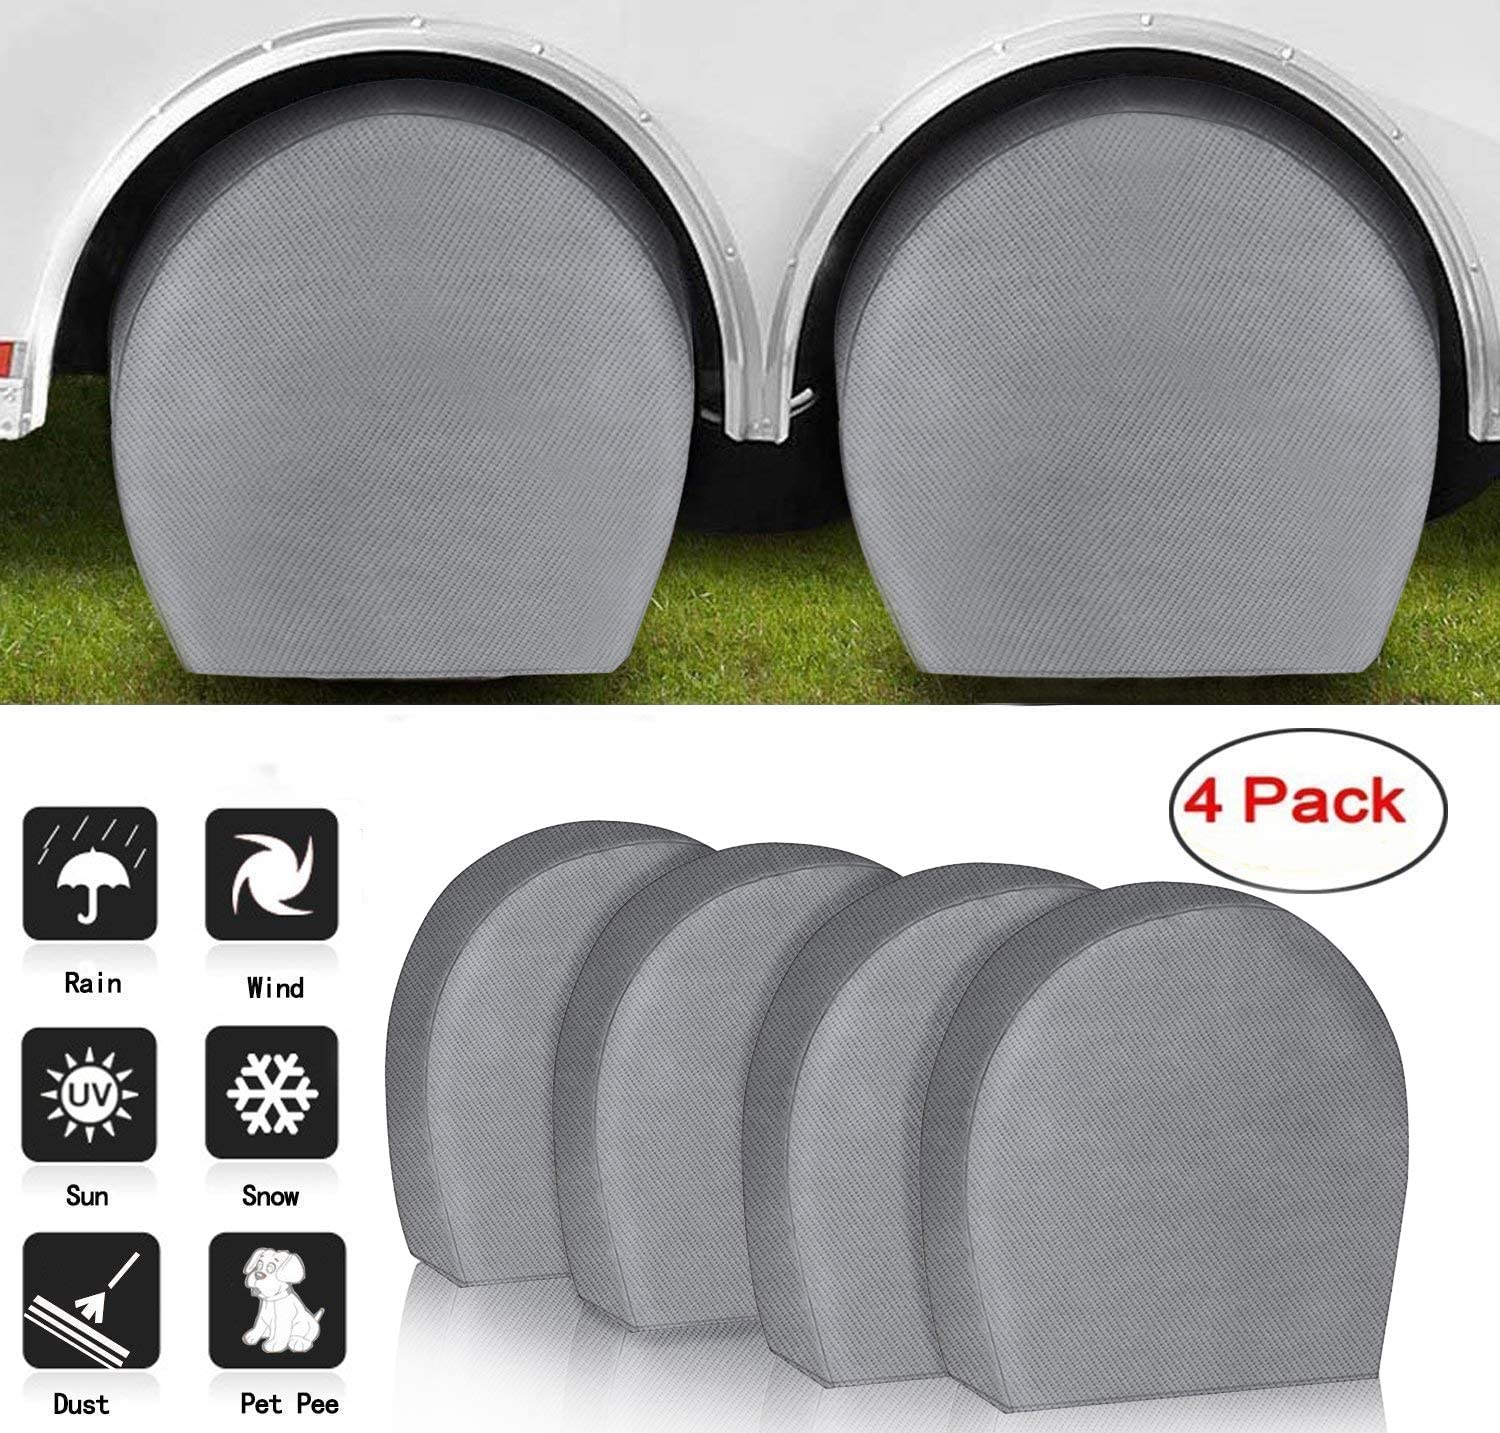 "ACUMSTE Set of 4 RV Tire Covers, Tire Covers for RV Wheel Motorhome Wheel Covers Waterproof UV Coating Tire Protectors for Trailer Truck Camper Auto Fits 29"" - 32"" Tire Diameters"